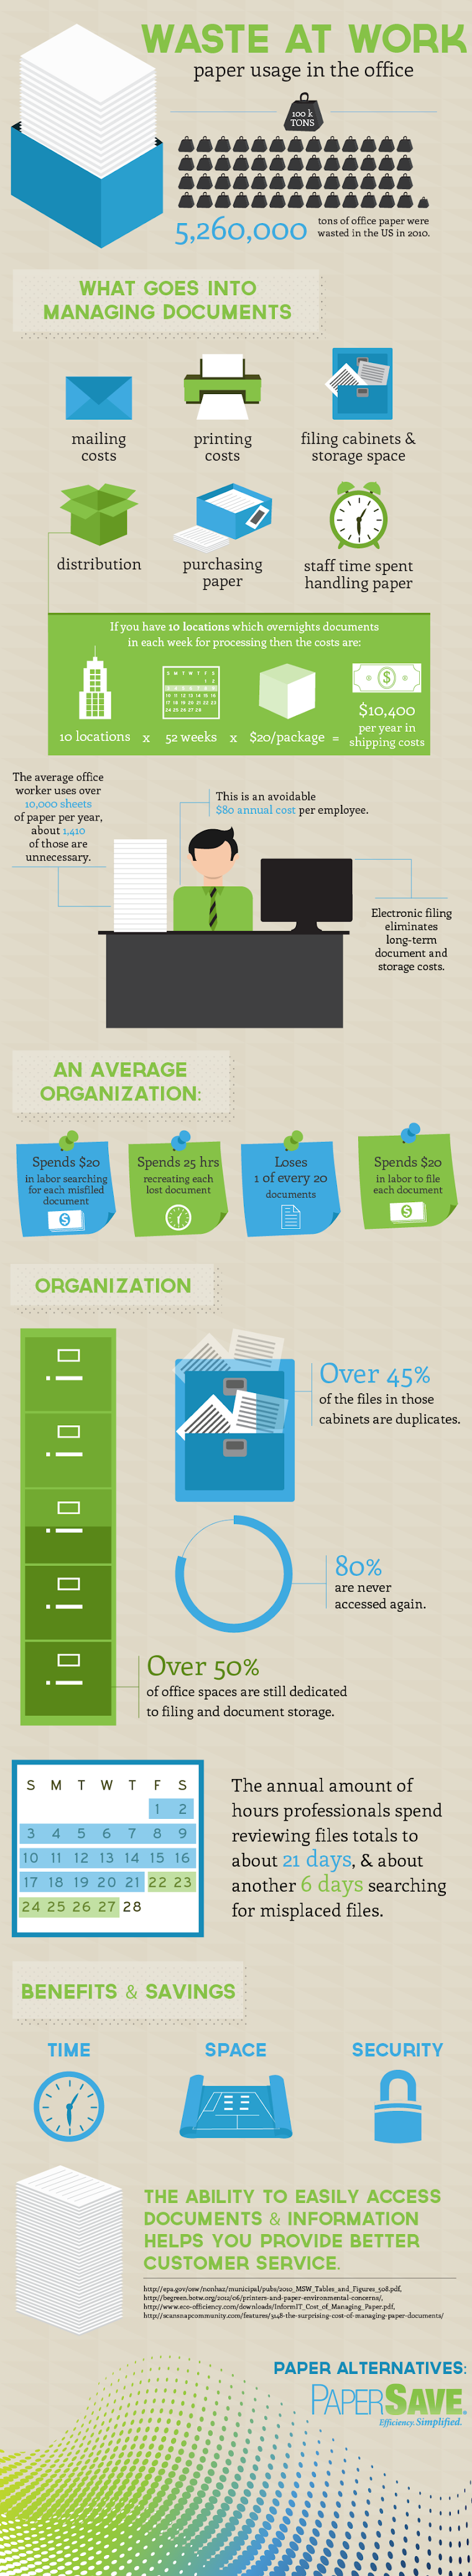 Waste at Work - Paper Usage in the Office #infographic #Waste at Work #Paper Waste #infographics #Paper Usage #Office #Business